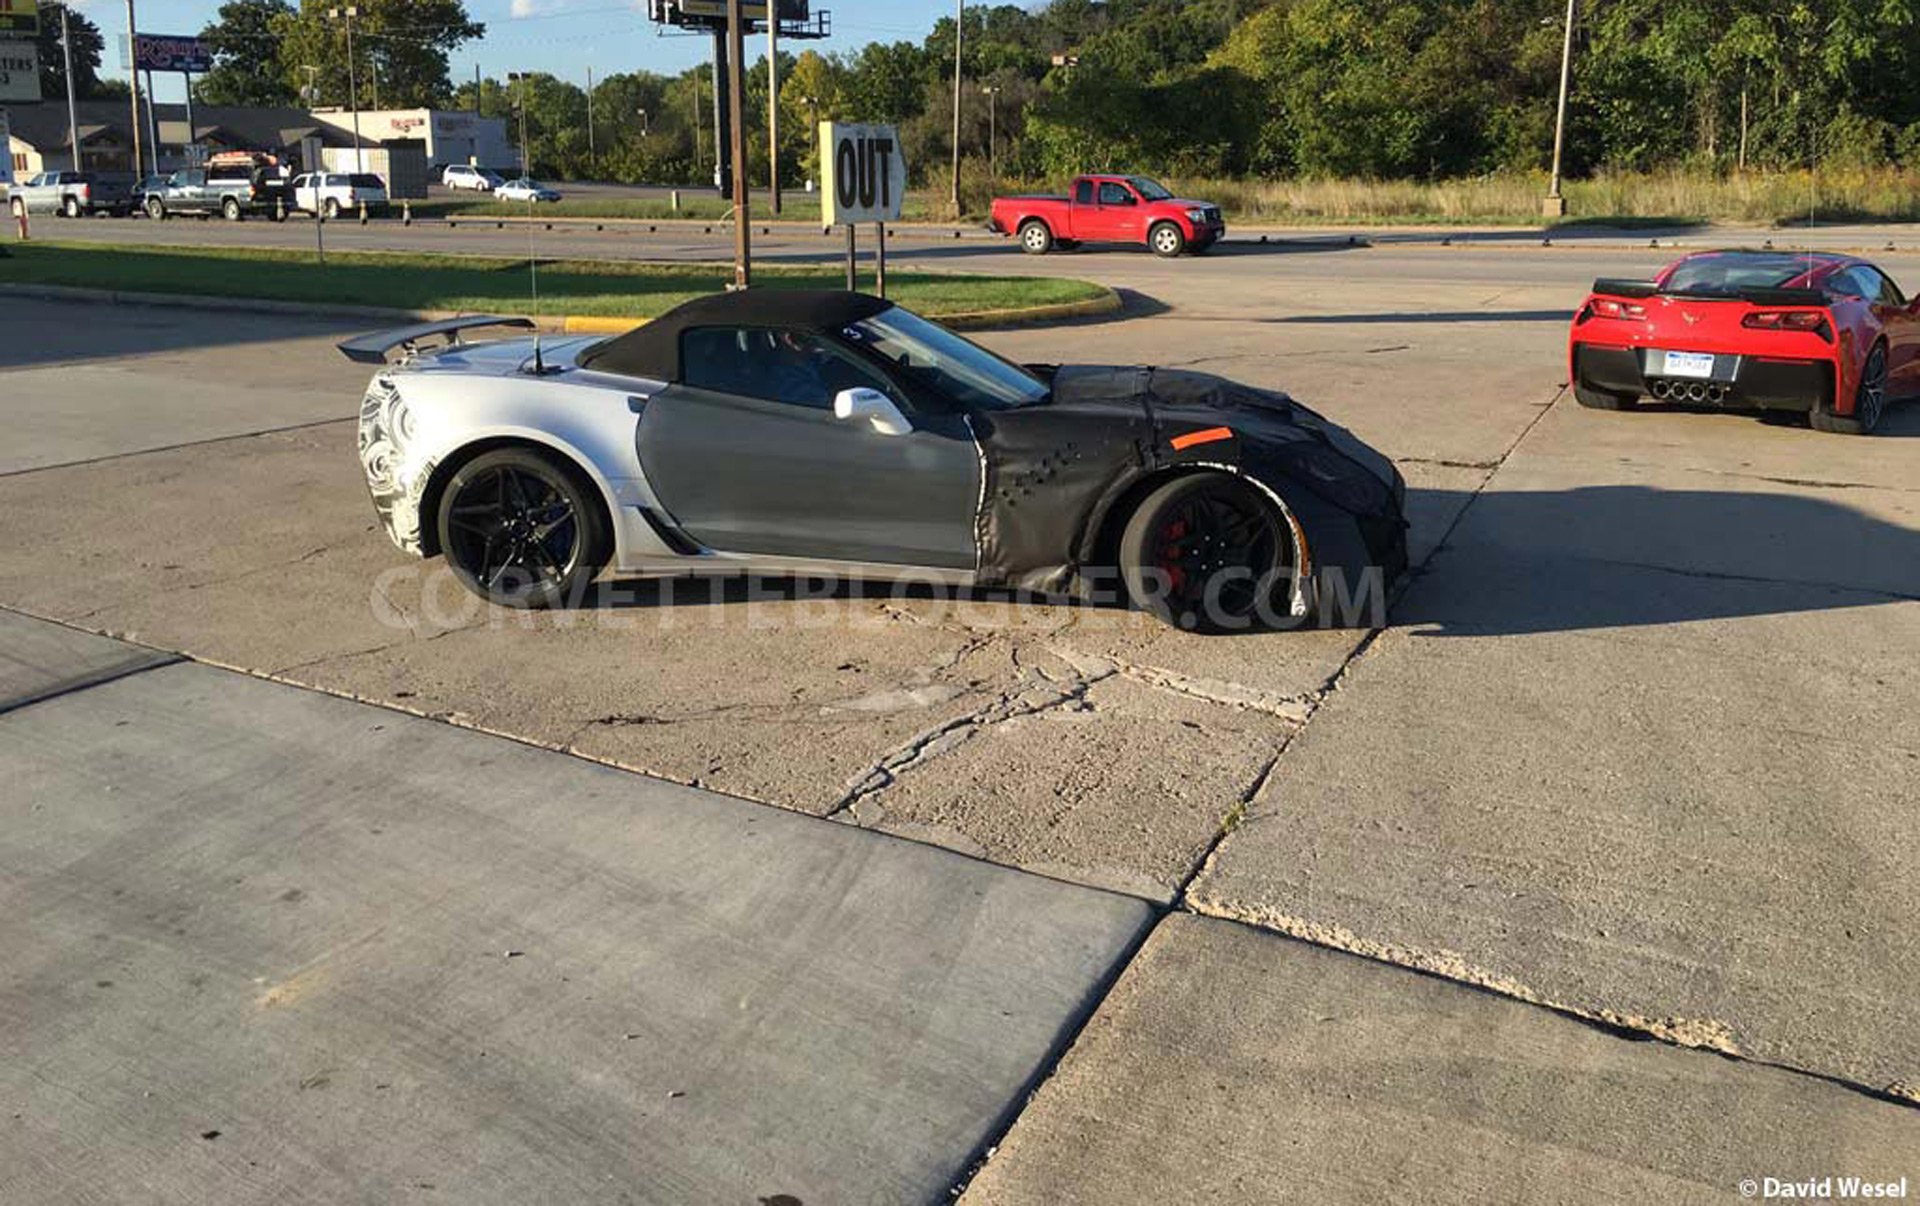 2018-chevrolet-corvette-zr1-convertible-spy-shots--image-via-david-wesel-corvetteblogger_100568468_h Modern Porsche 911 Gt2 Vs Corvette Zr1 Cars Trend